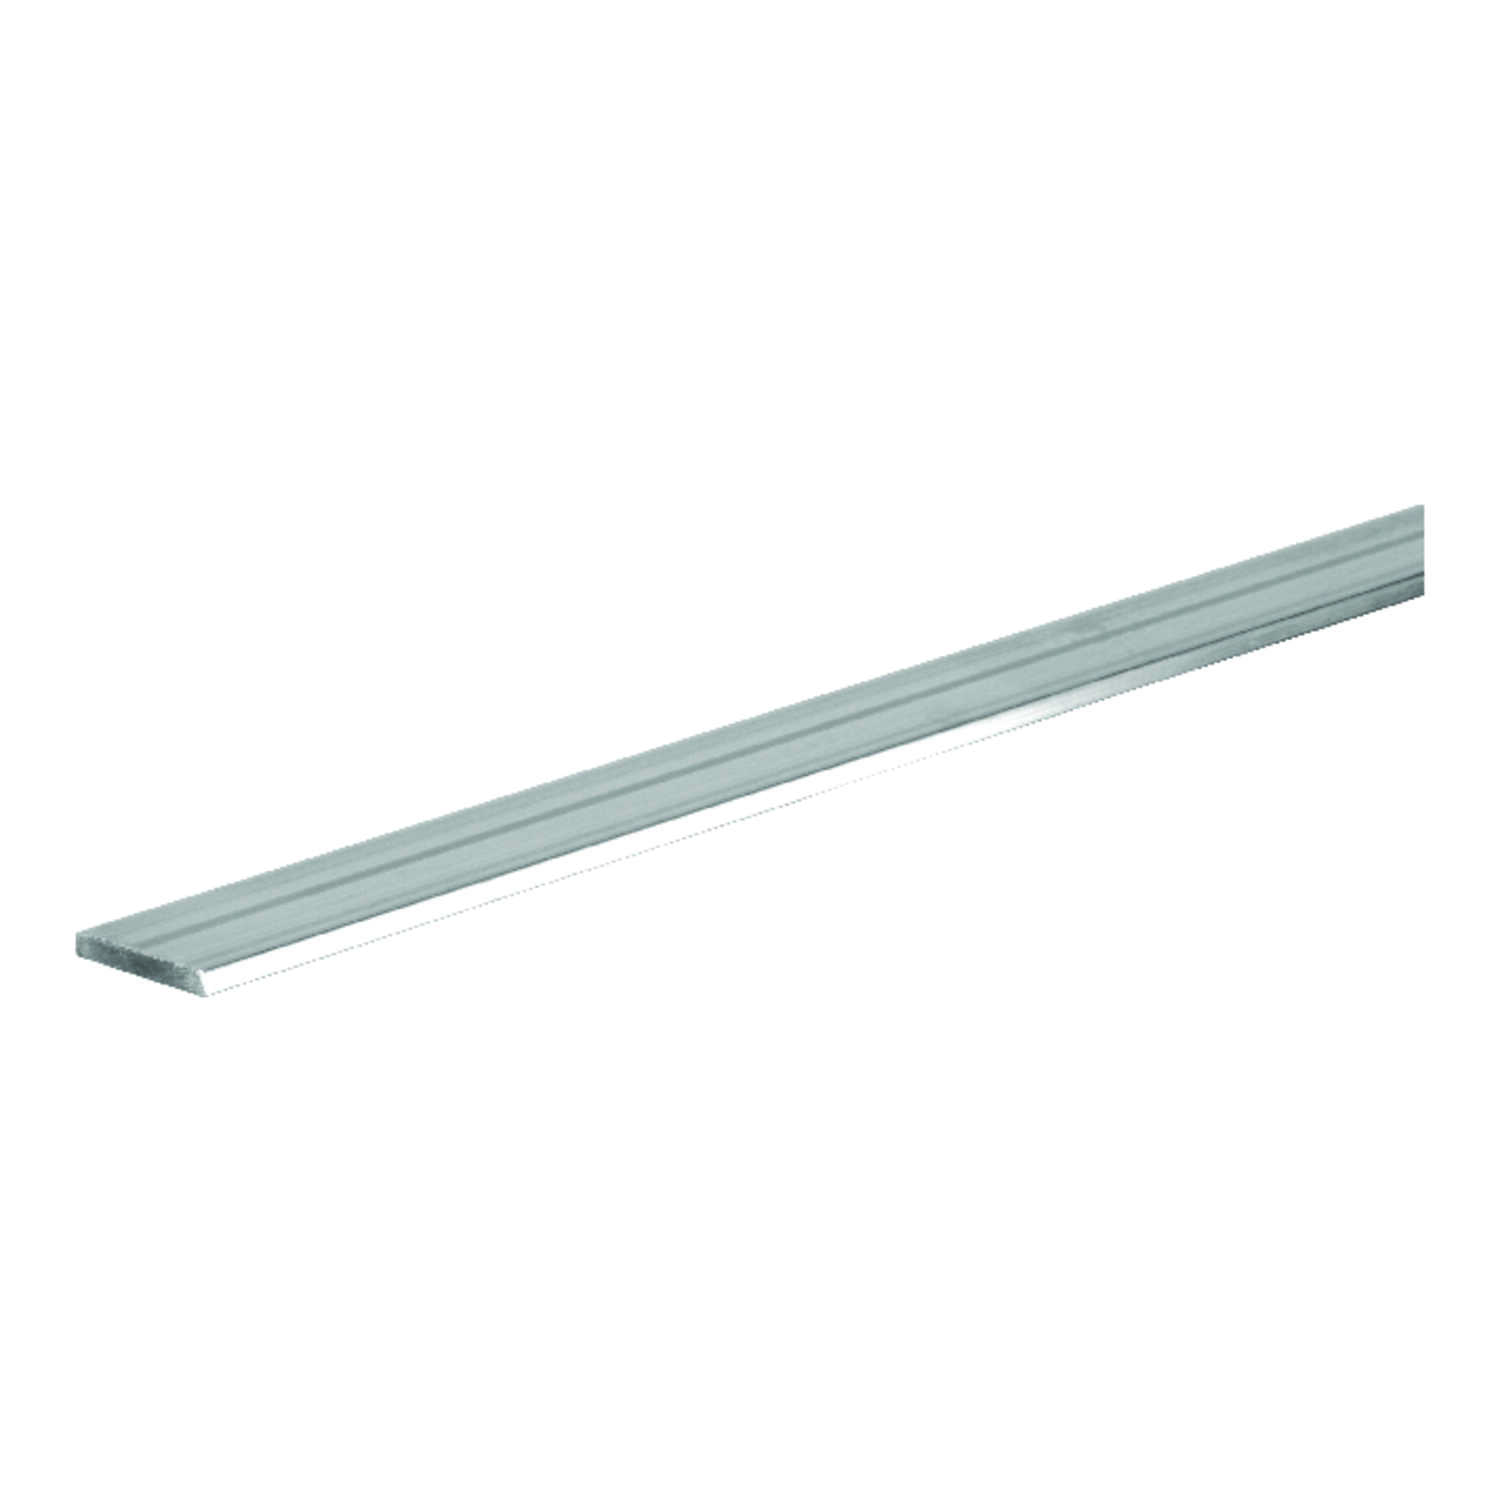 Boltmaster  0.125 in.  x 1.25 in. W x 3 ft. L Weldable Aluminum Flat Bar  1 pk